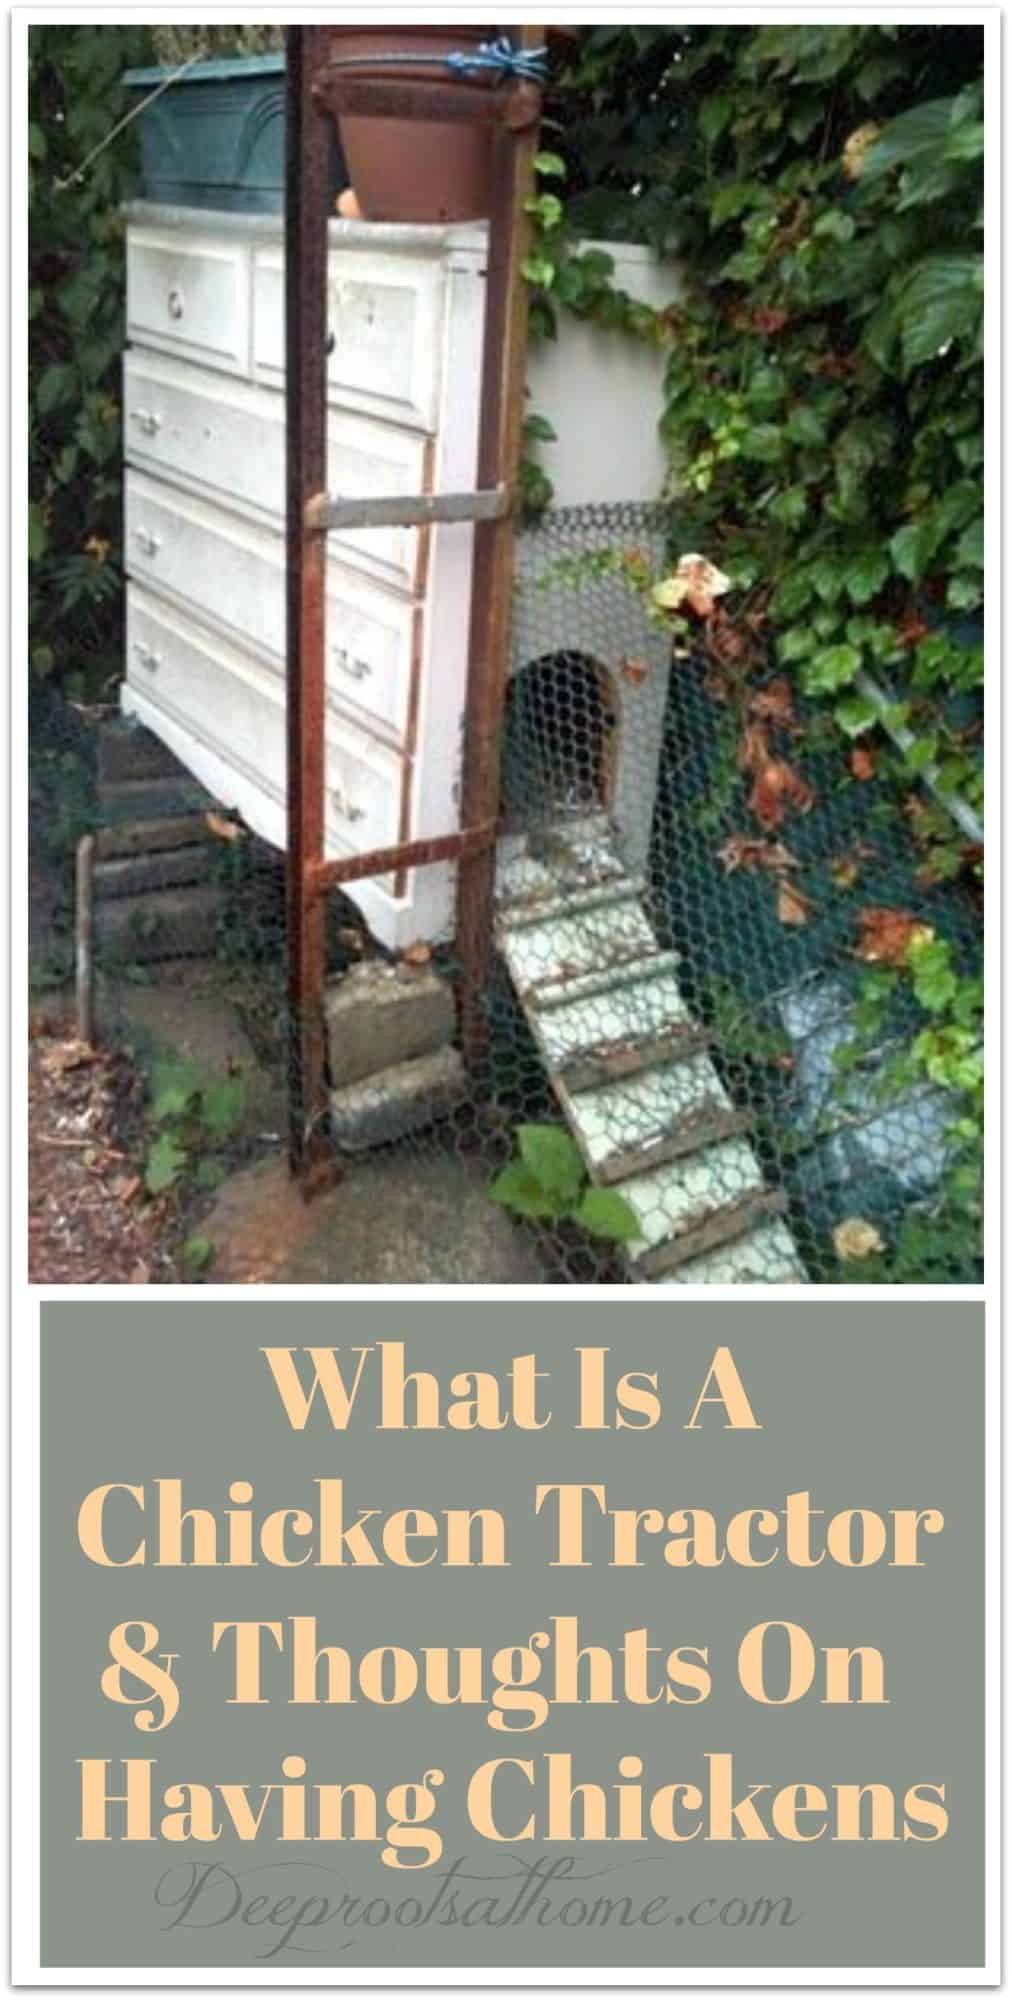 What Is A Chicken Tractor and Thoughts On Having Chickens. A cabinet as a chicken home